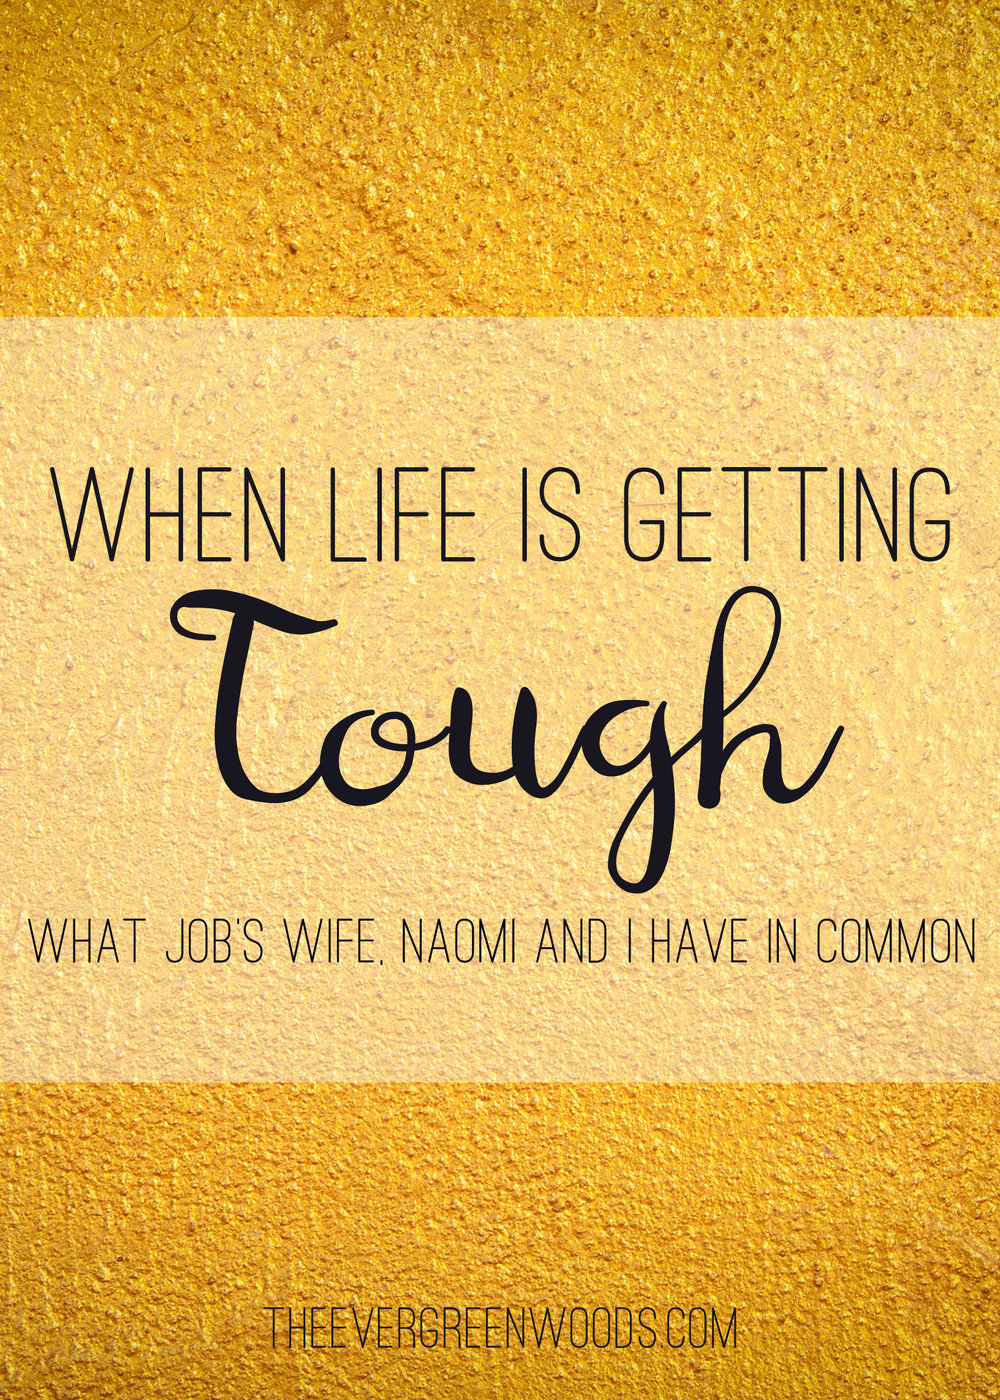 Life can be tough. See what Job's wife, Naomi and I had in common when dealing with trials.